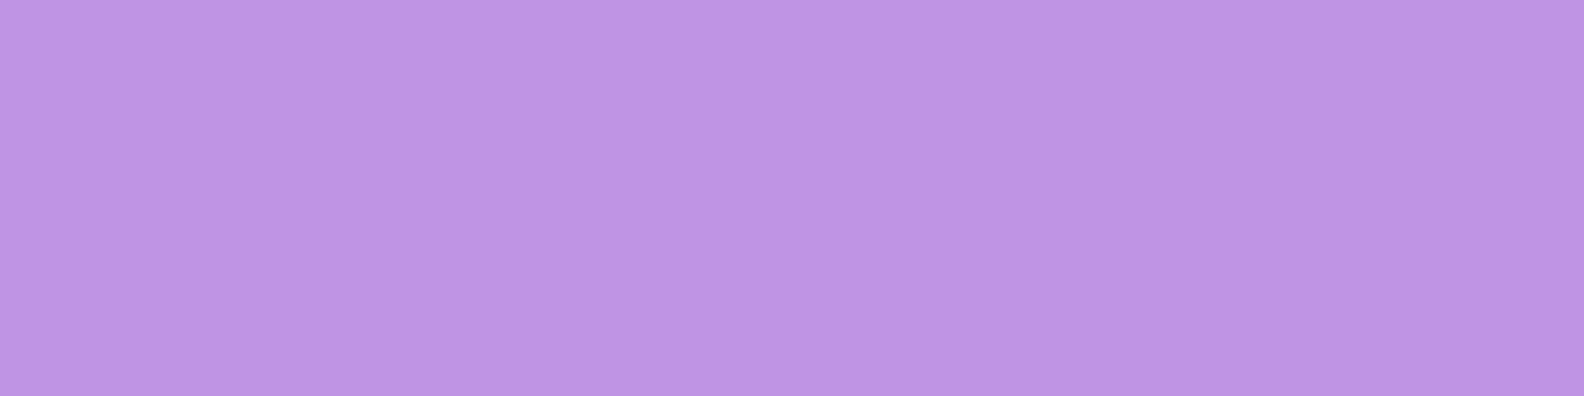 1584x396 Bright Lavender Solid Color Background